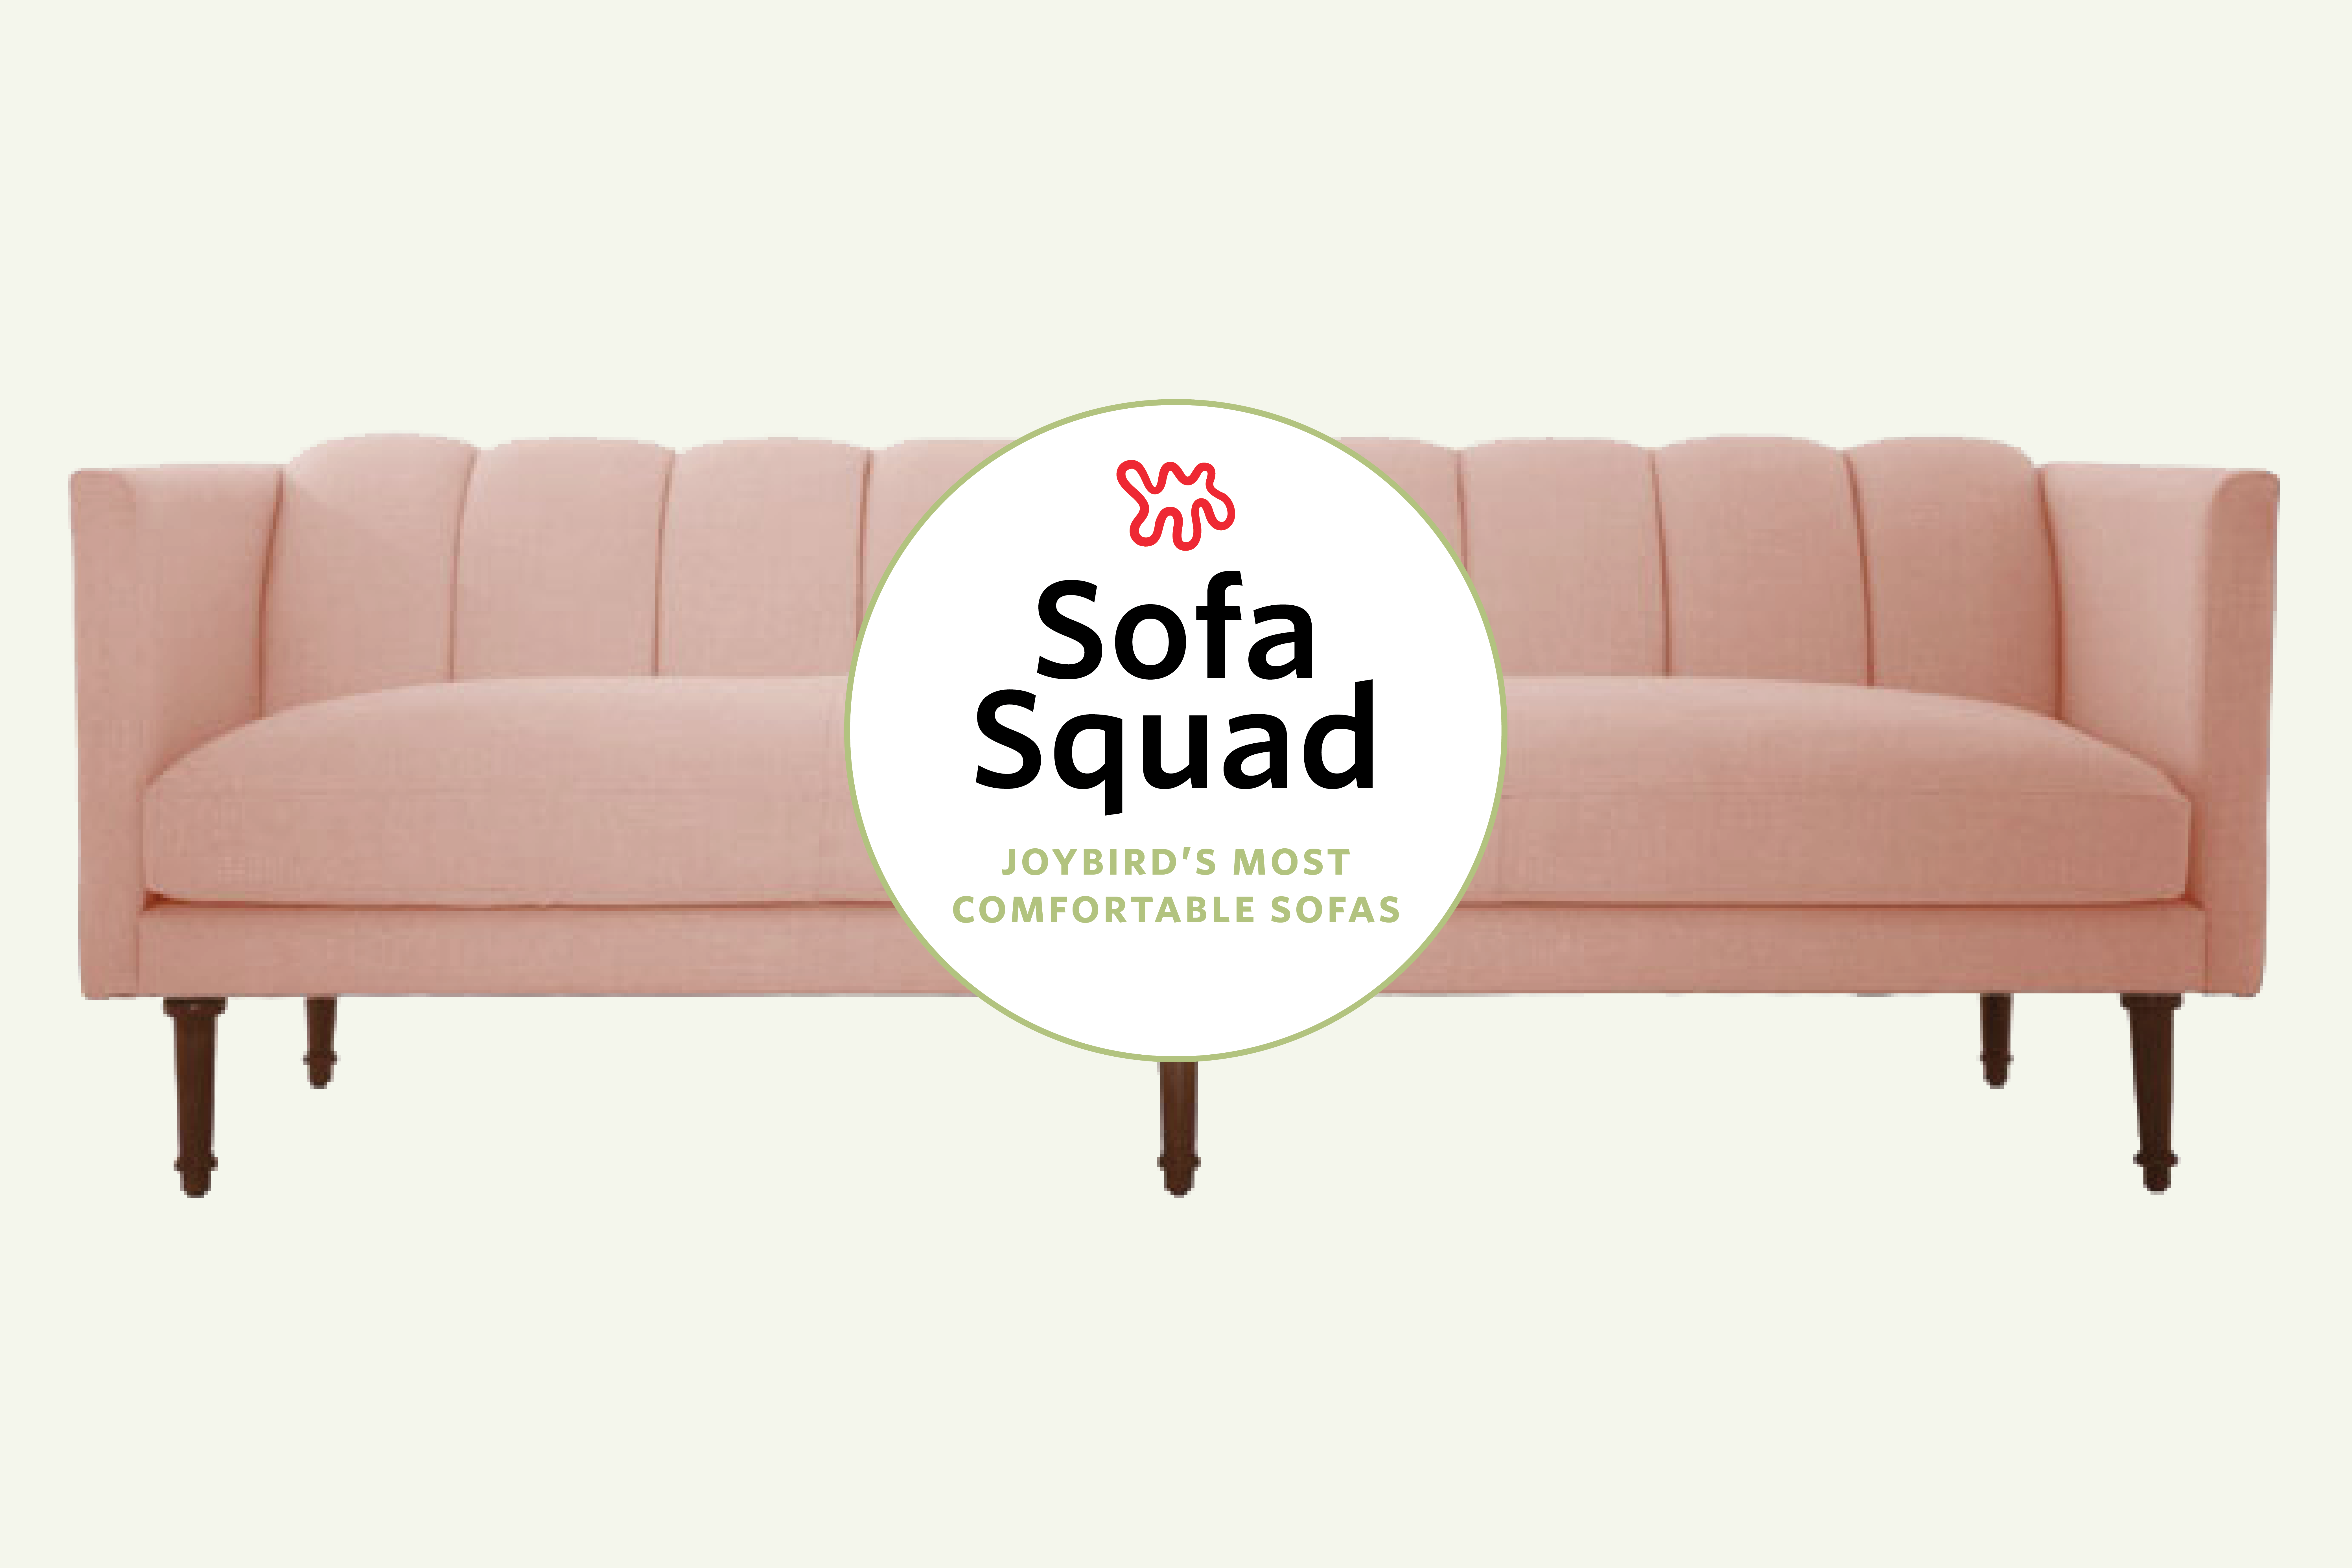 Swell Reviewed The Most Comfortable Sofas At Joybird Apartment Pabps2019 Chair Design Images Pabps2019Com